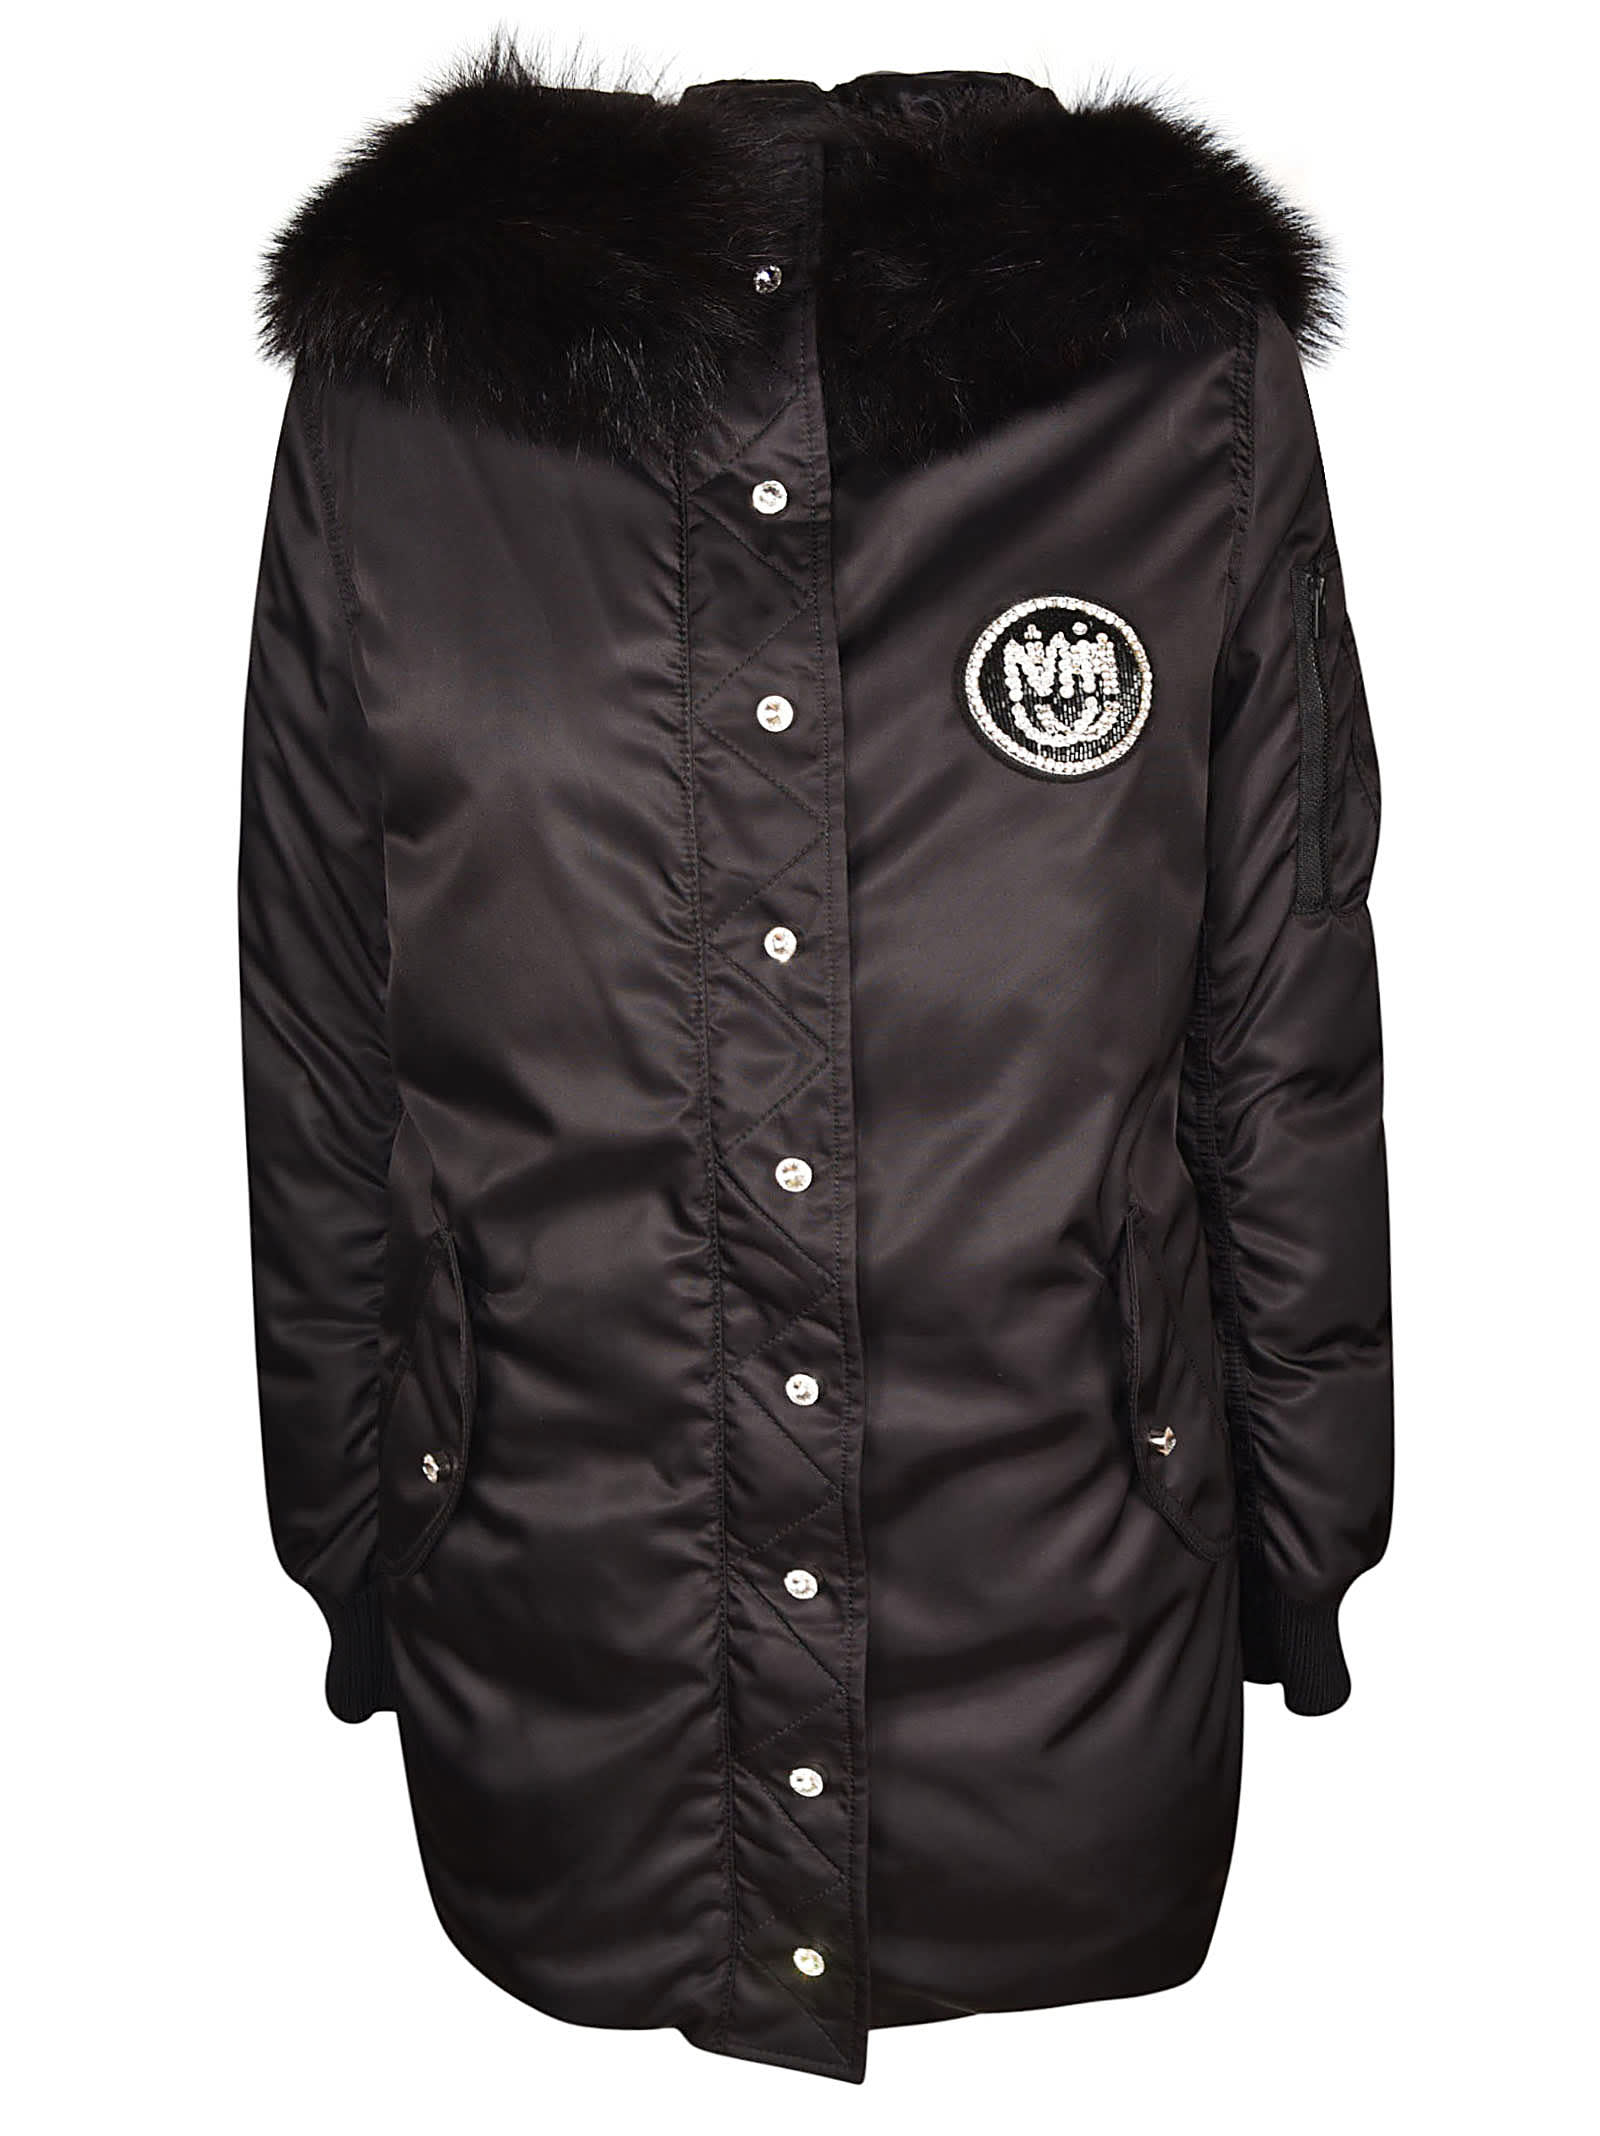 Miu Miu Buttoned Logo Patch Hooded Jacket